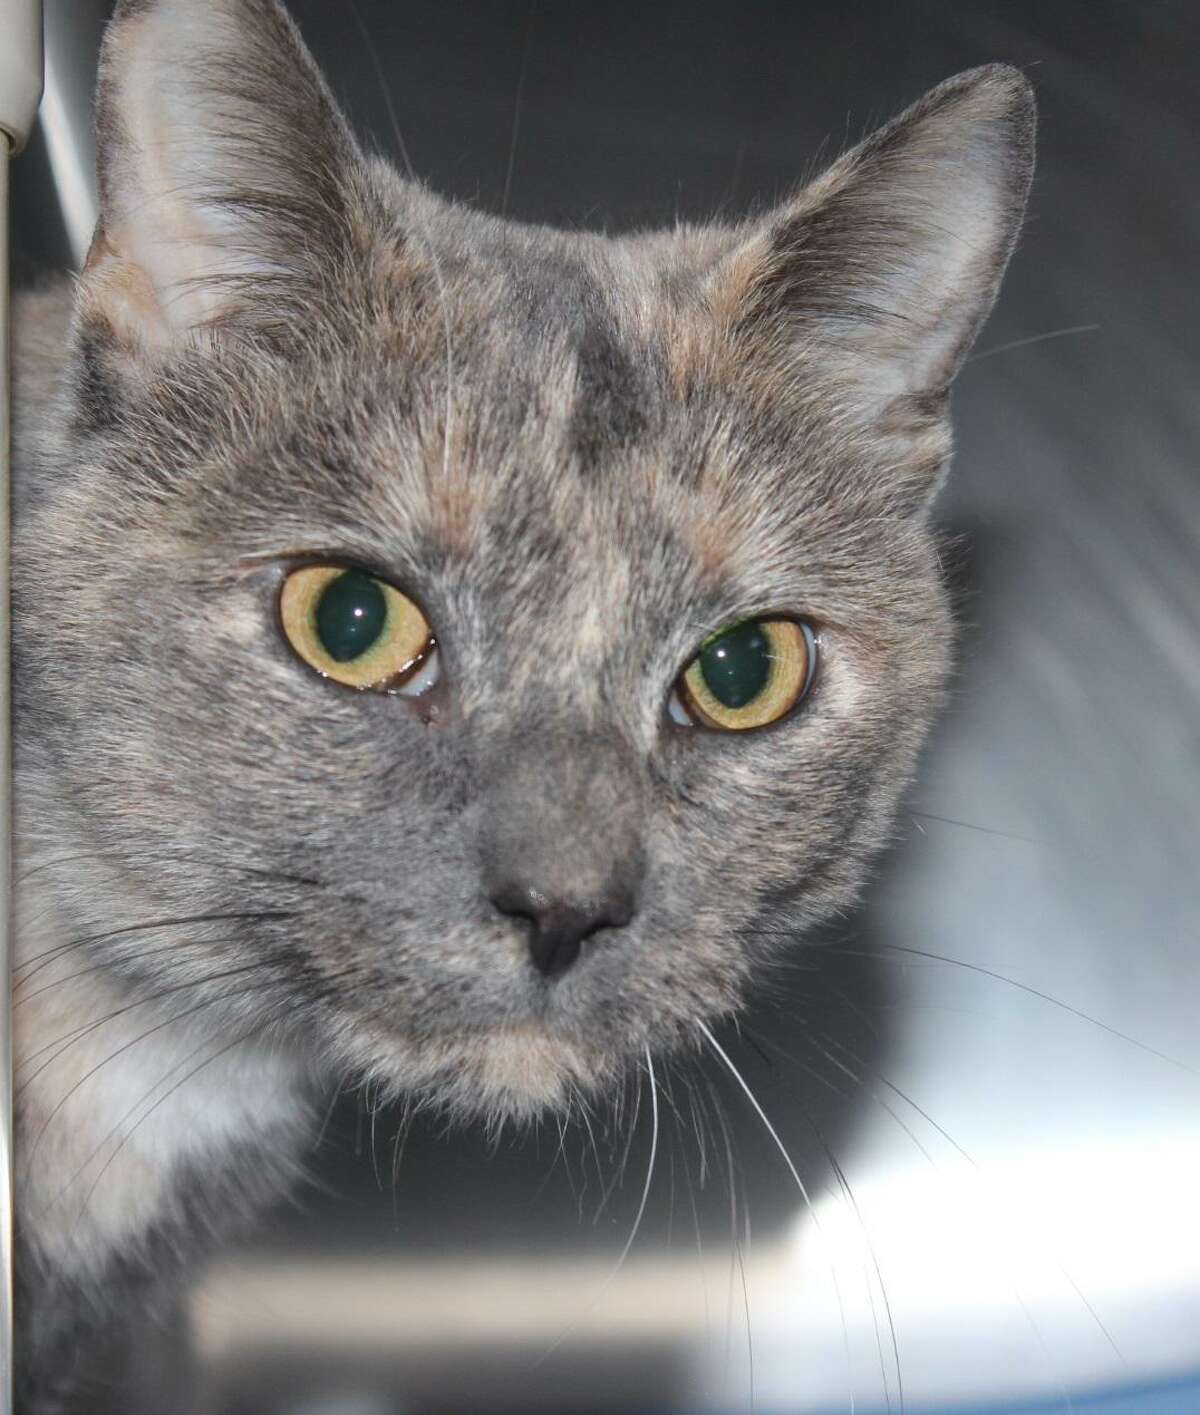 Scarlette is a 2-year-old dilute torti. She says,